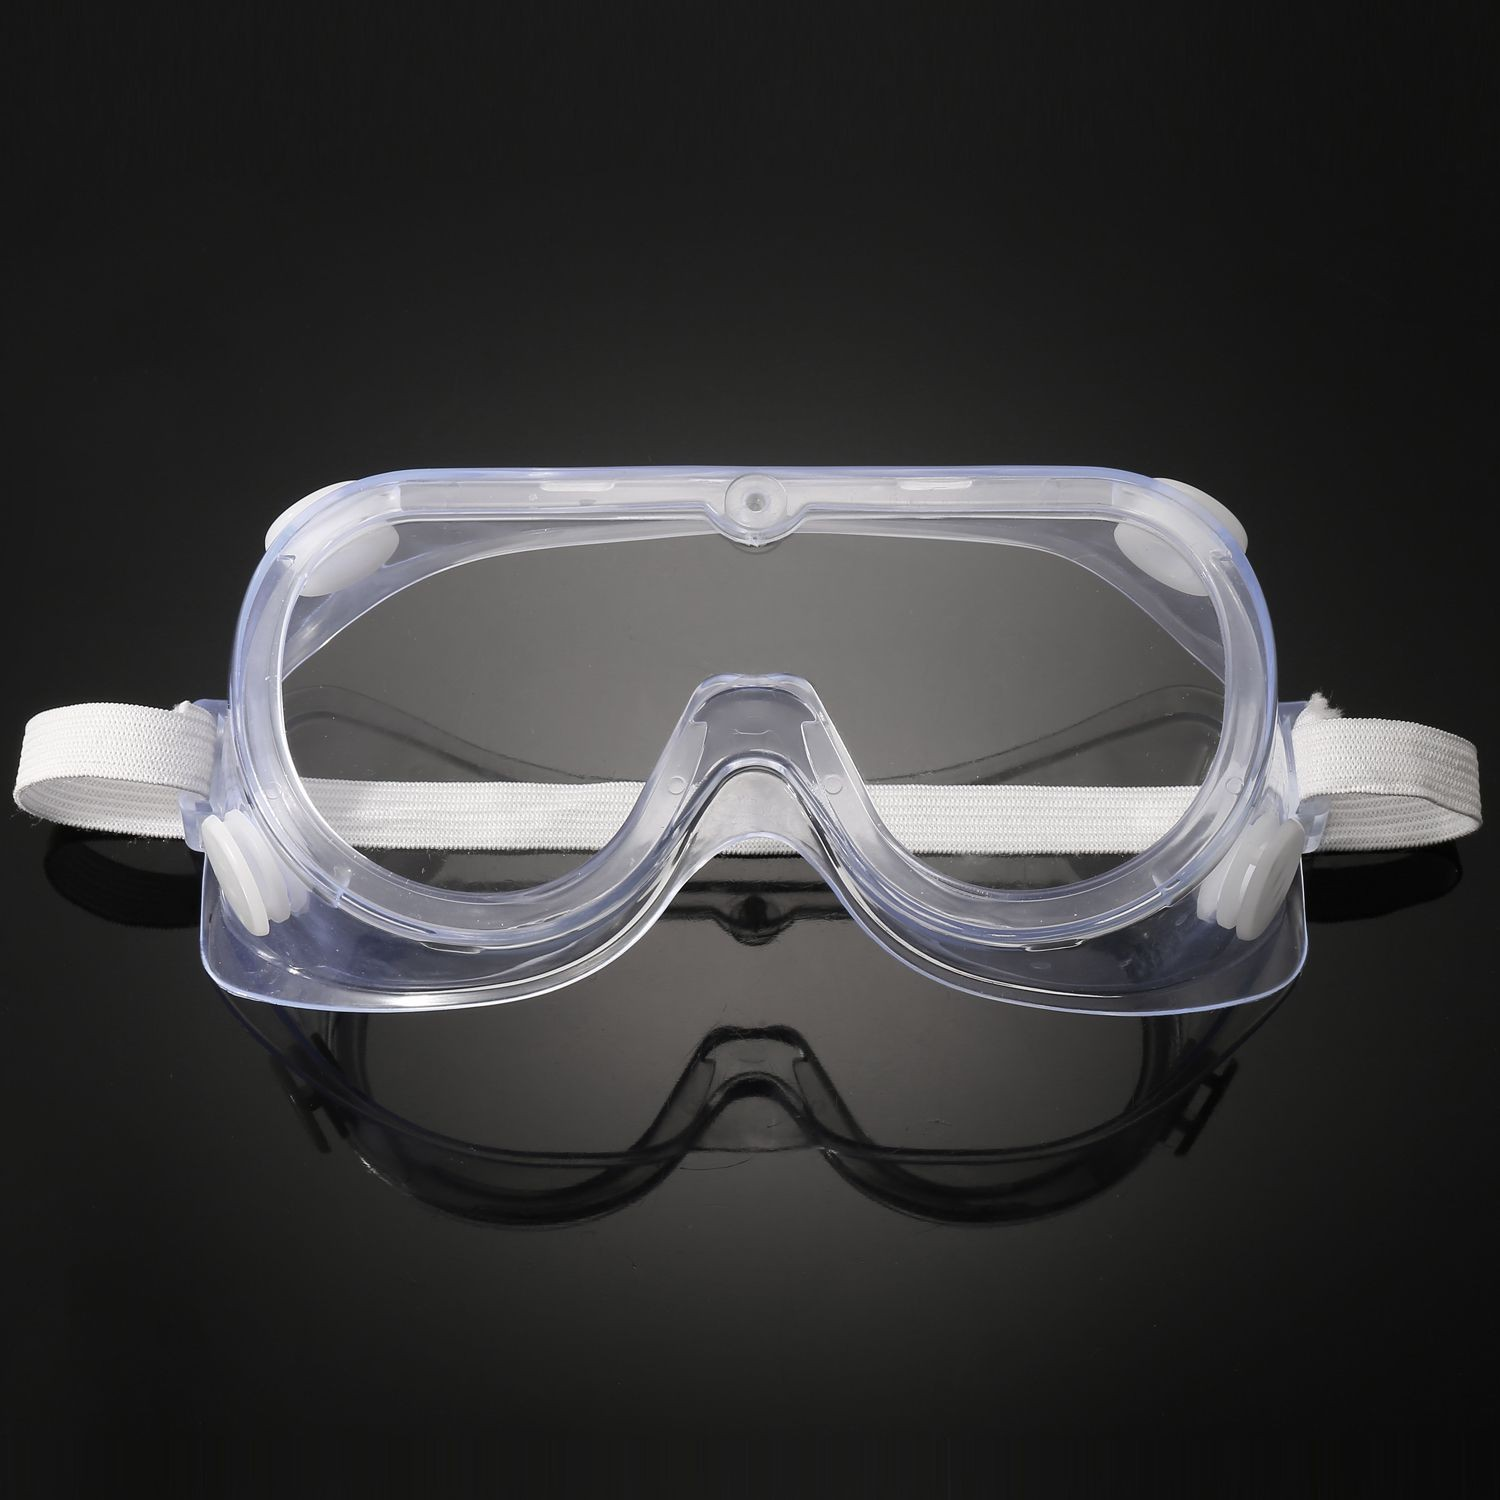 Protective Safety Goggles protection